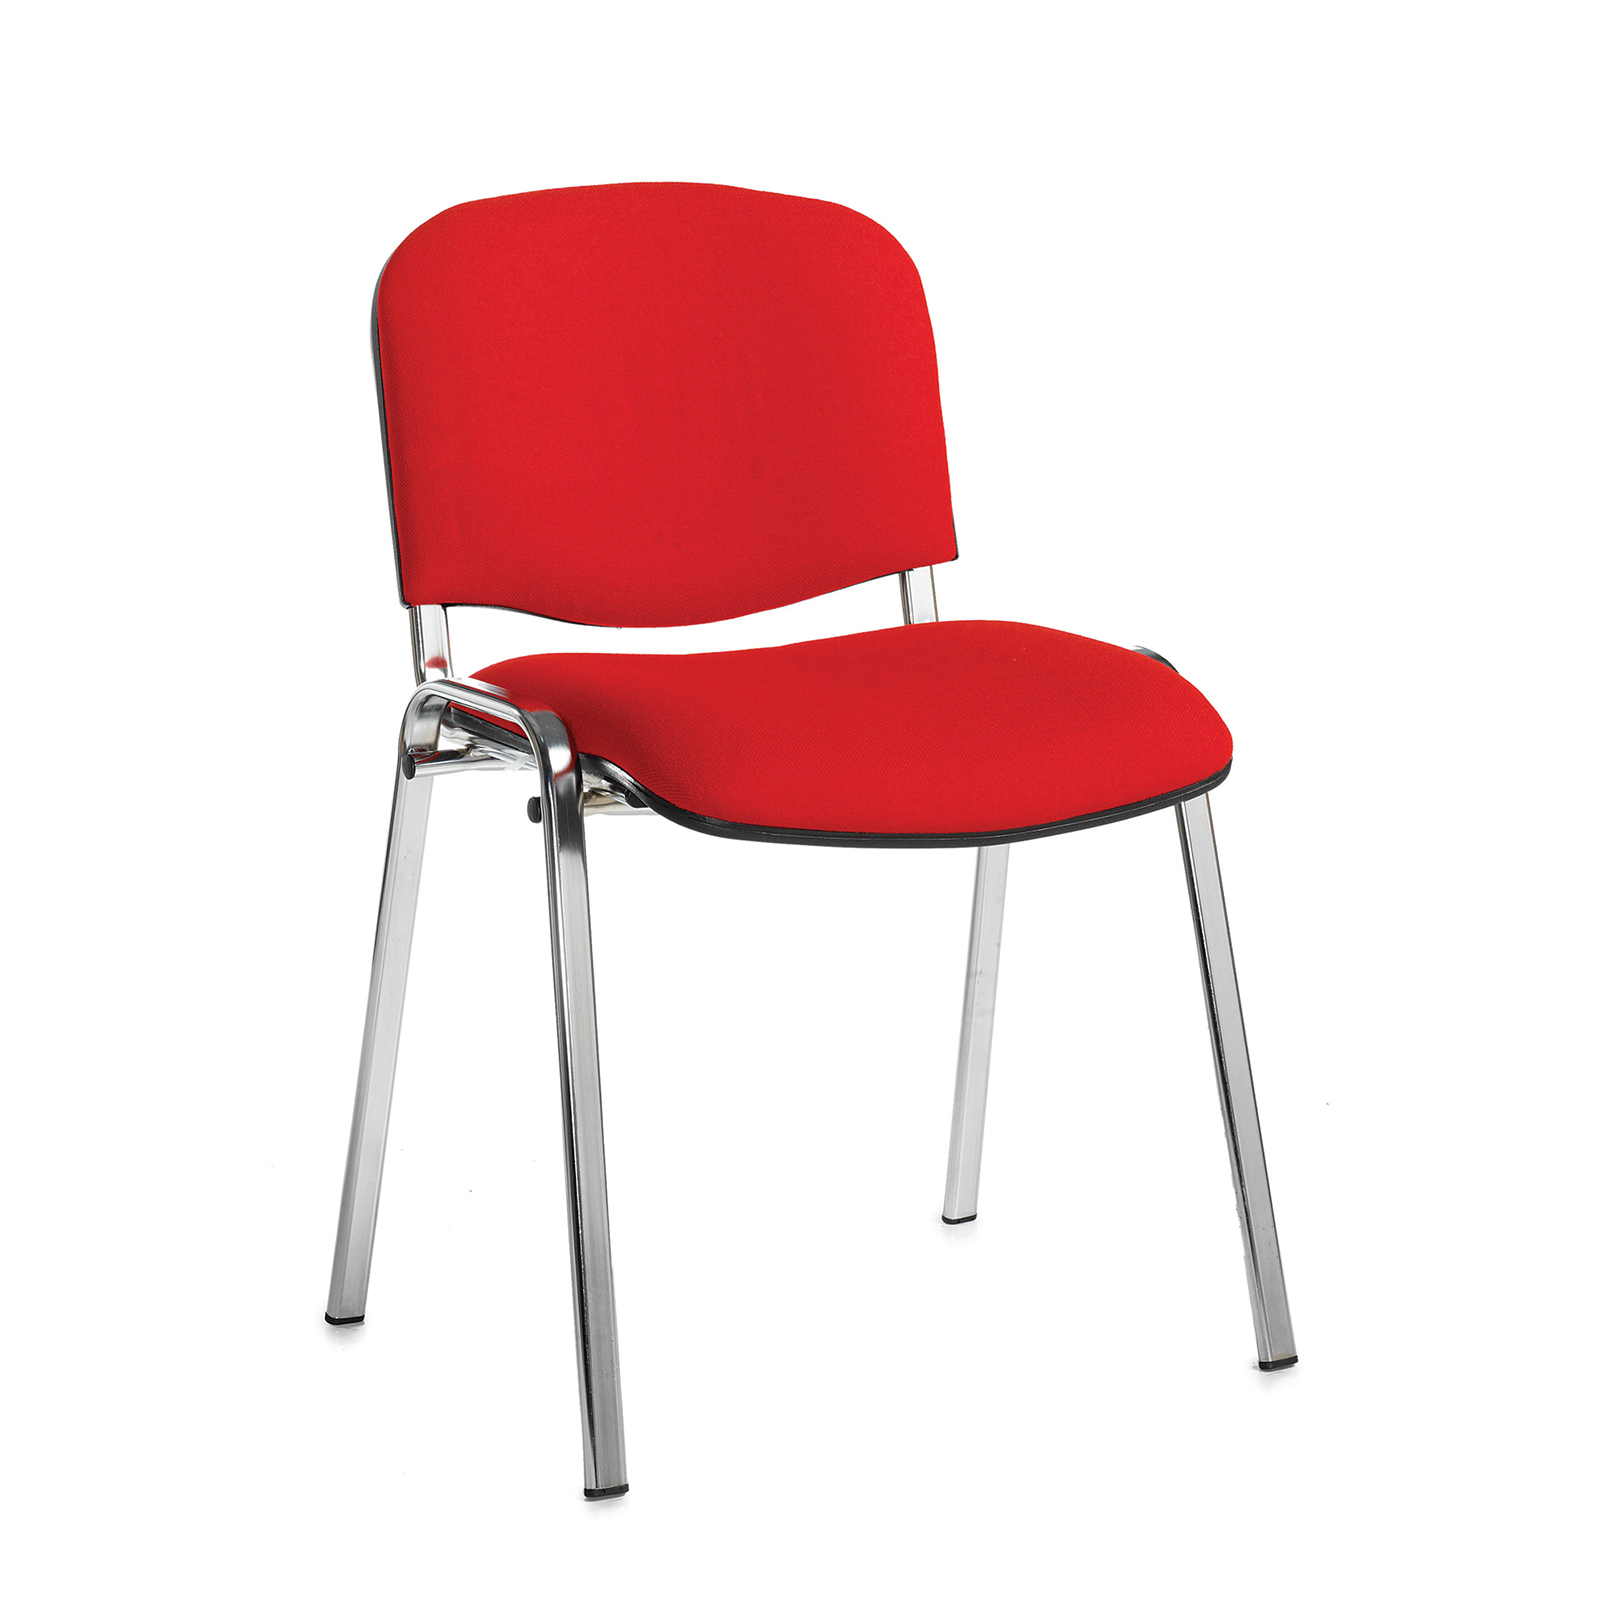 Boardroom / Meeting Taurus meeting room stackable chair with chrome frame and no arms - red